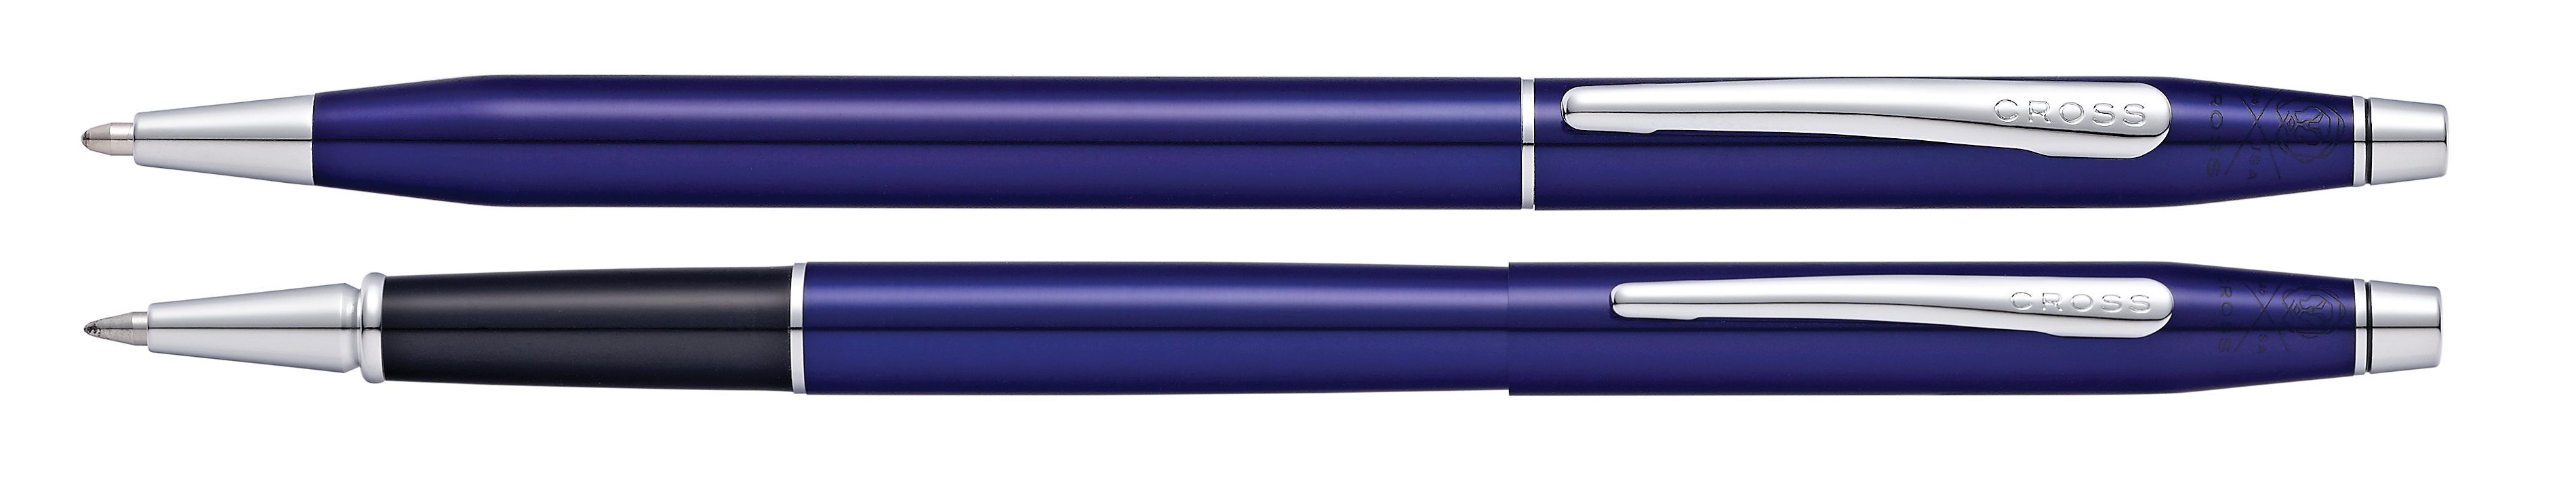 Classic Century Translucent Blue Lacquer Ballpoint and Rollerball Pen Set